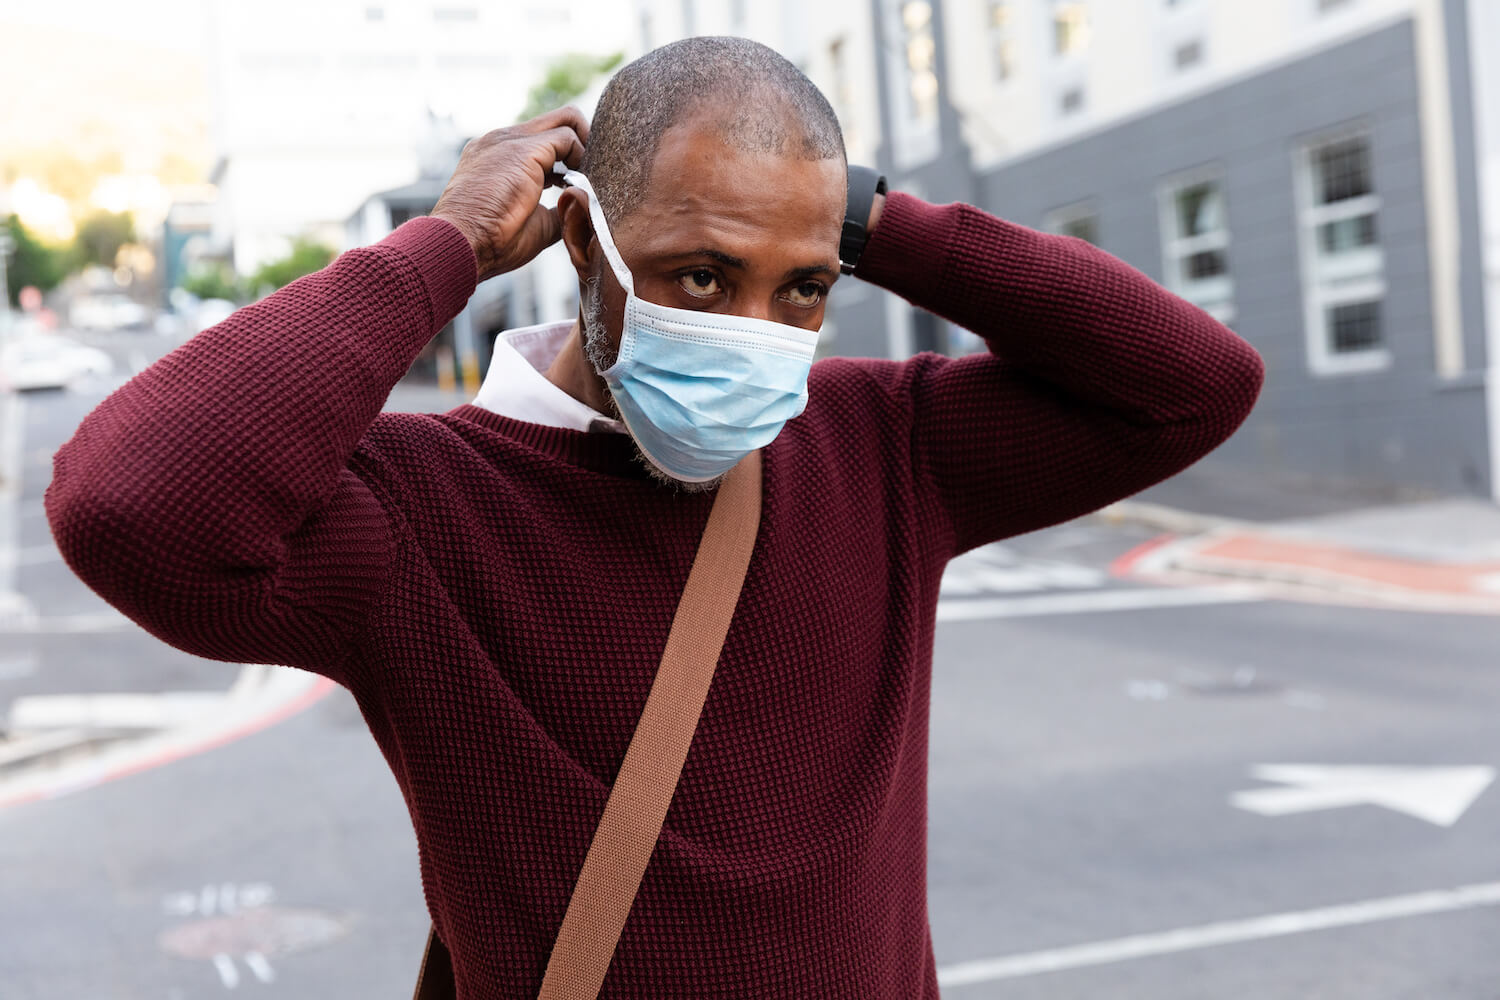 Man putting on face mask because of COVID-19 and the law